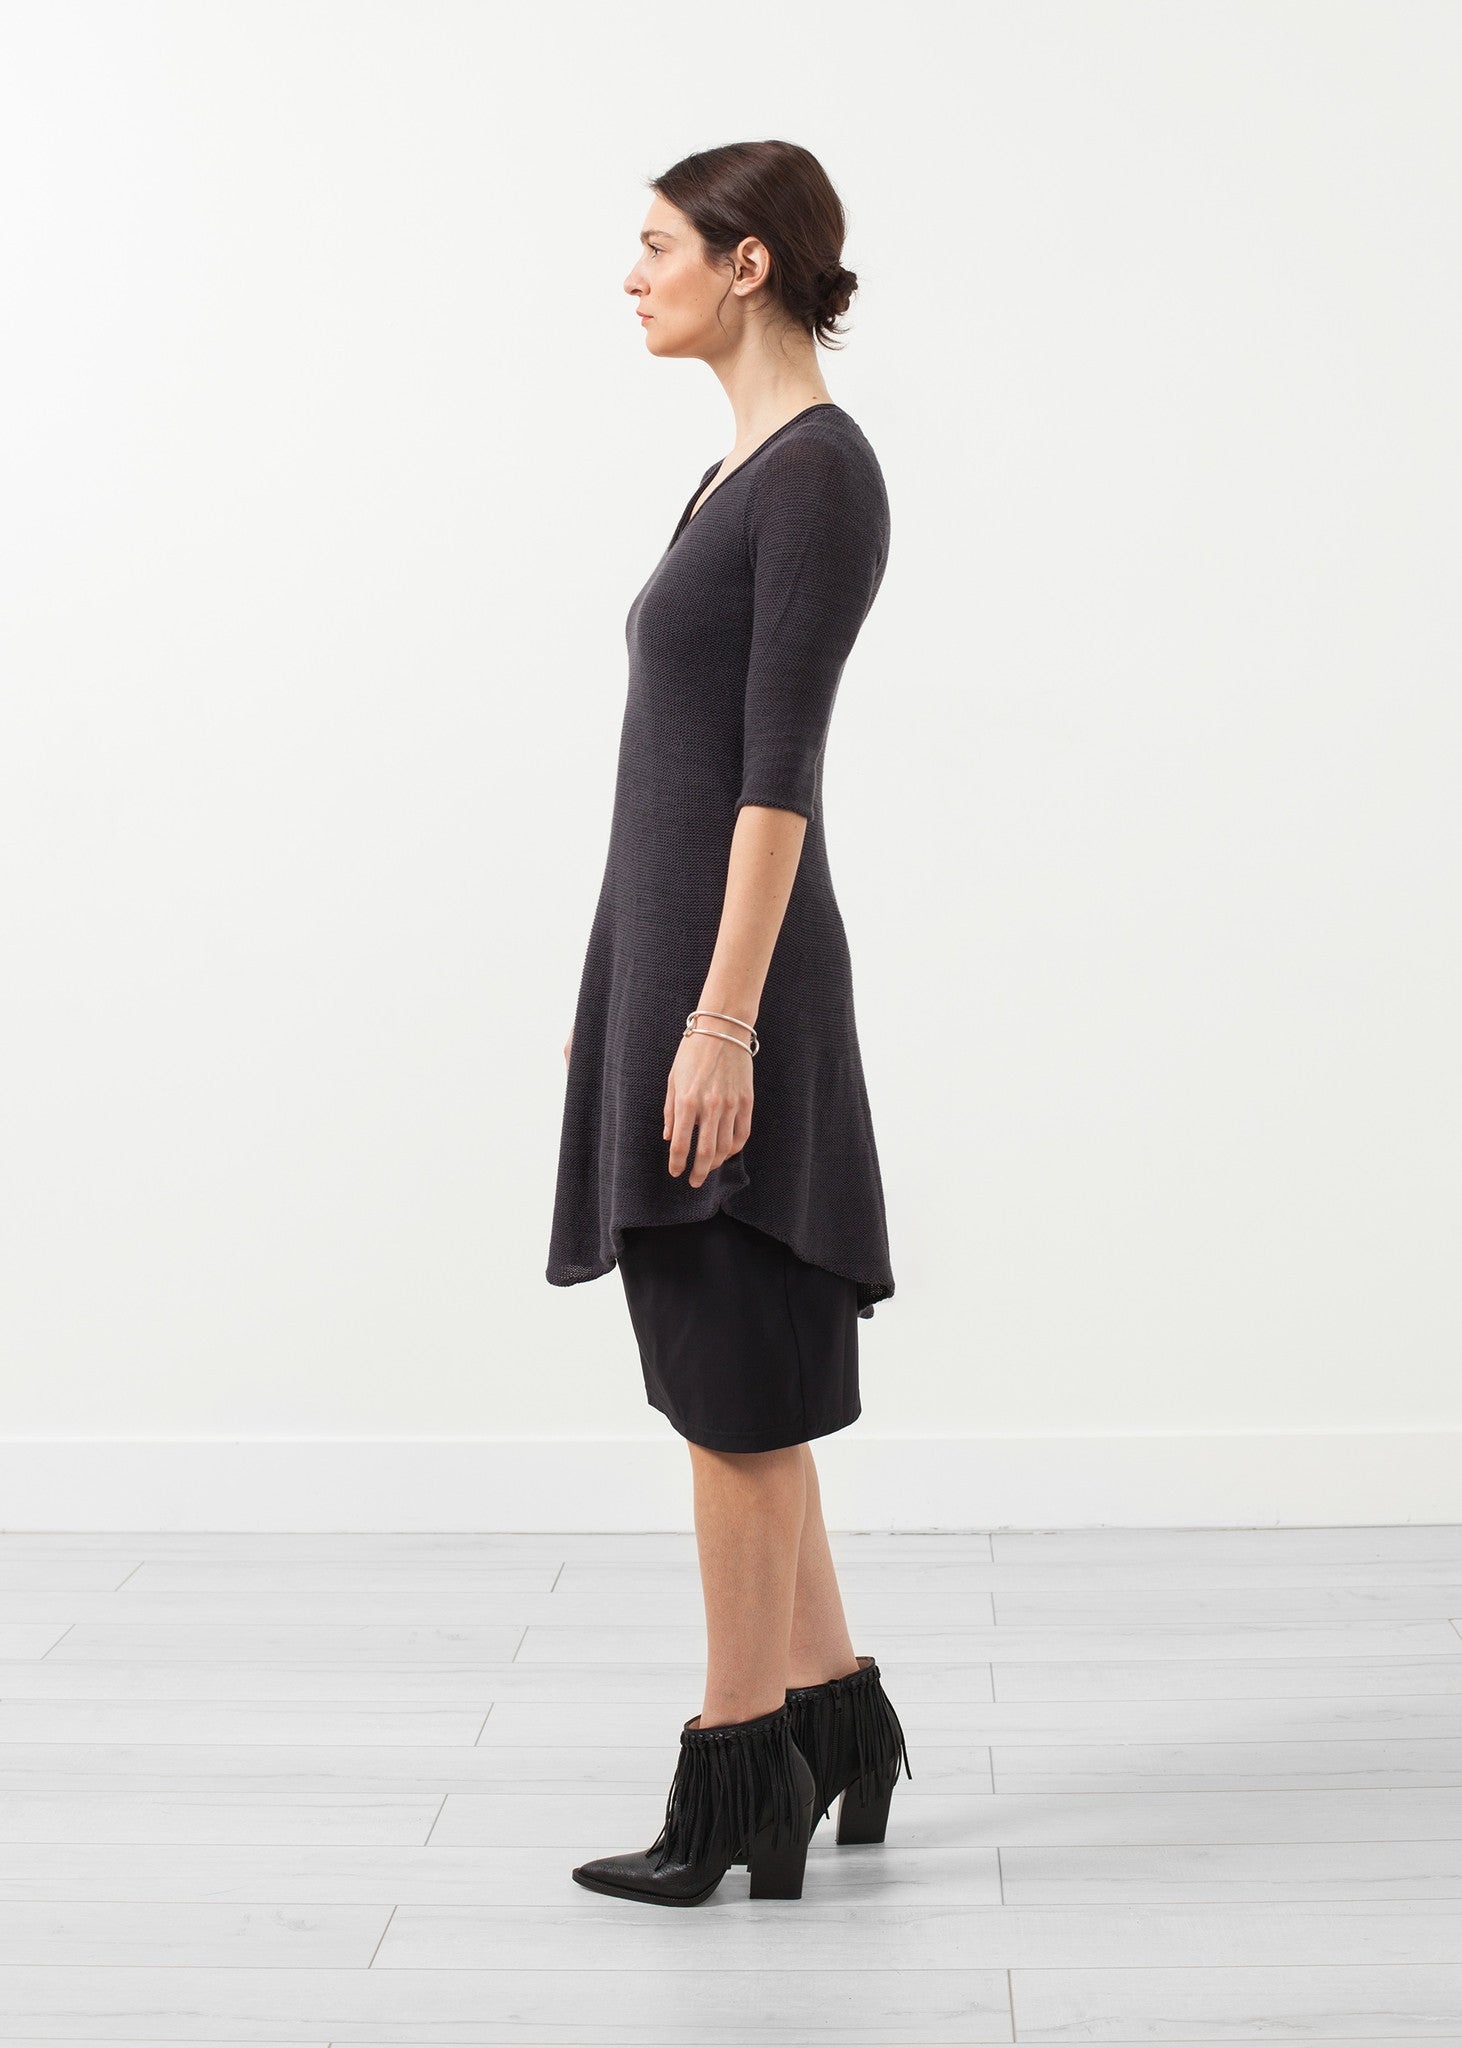 Hubsi Sweater Dress